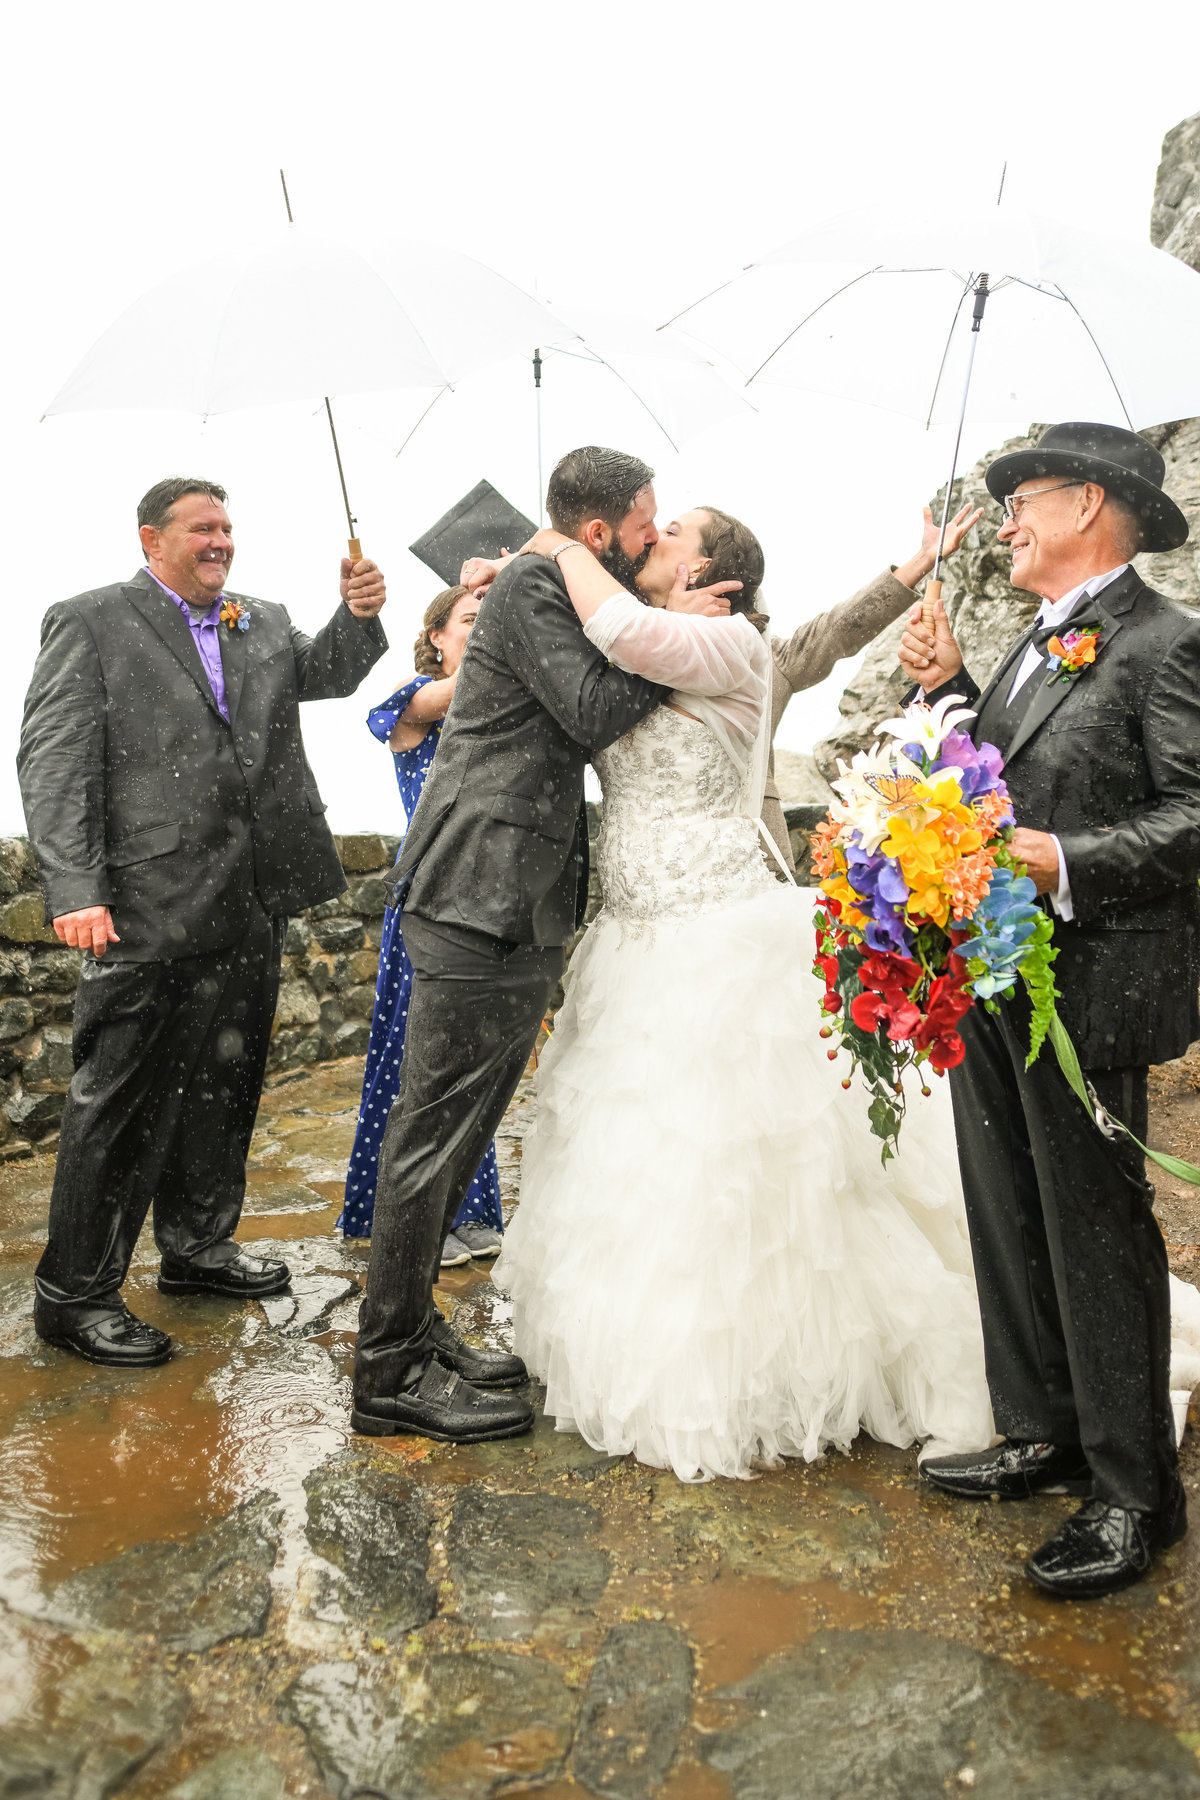 Redway-California-wedding-photographer-Parky's-Pics-Photography-Humboldt-County-Photographer-wedding-rock-rainy-day-wedding-trinidad-ca-4.jpg